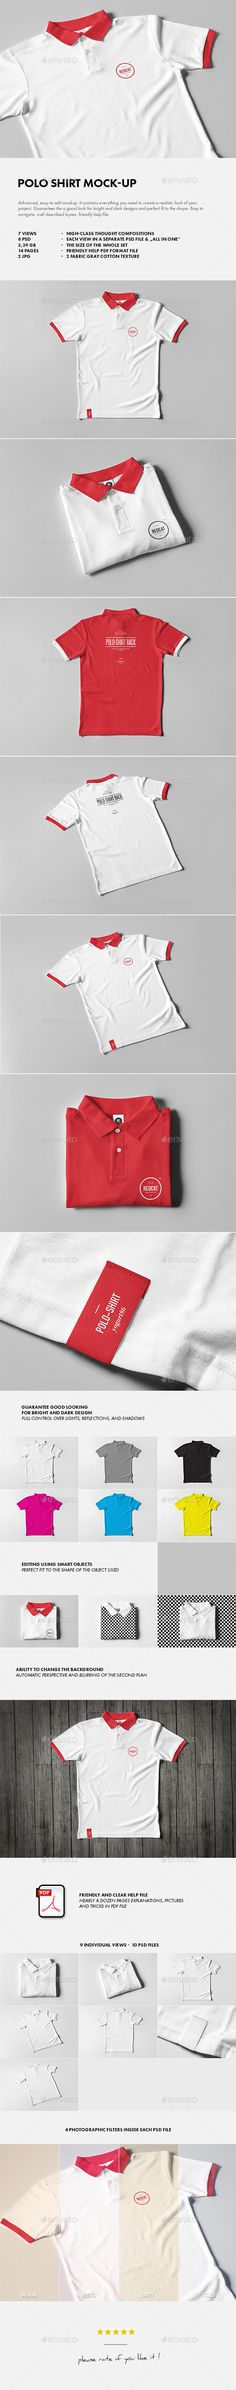 Polo Shirt Mockup  — PSD Template #mock up #ticket • Download ➝ https://graphicriver.net/item/polo-shirt-mockup/18429042?ref=pxcr